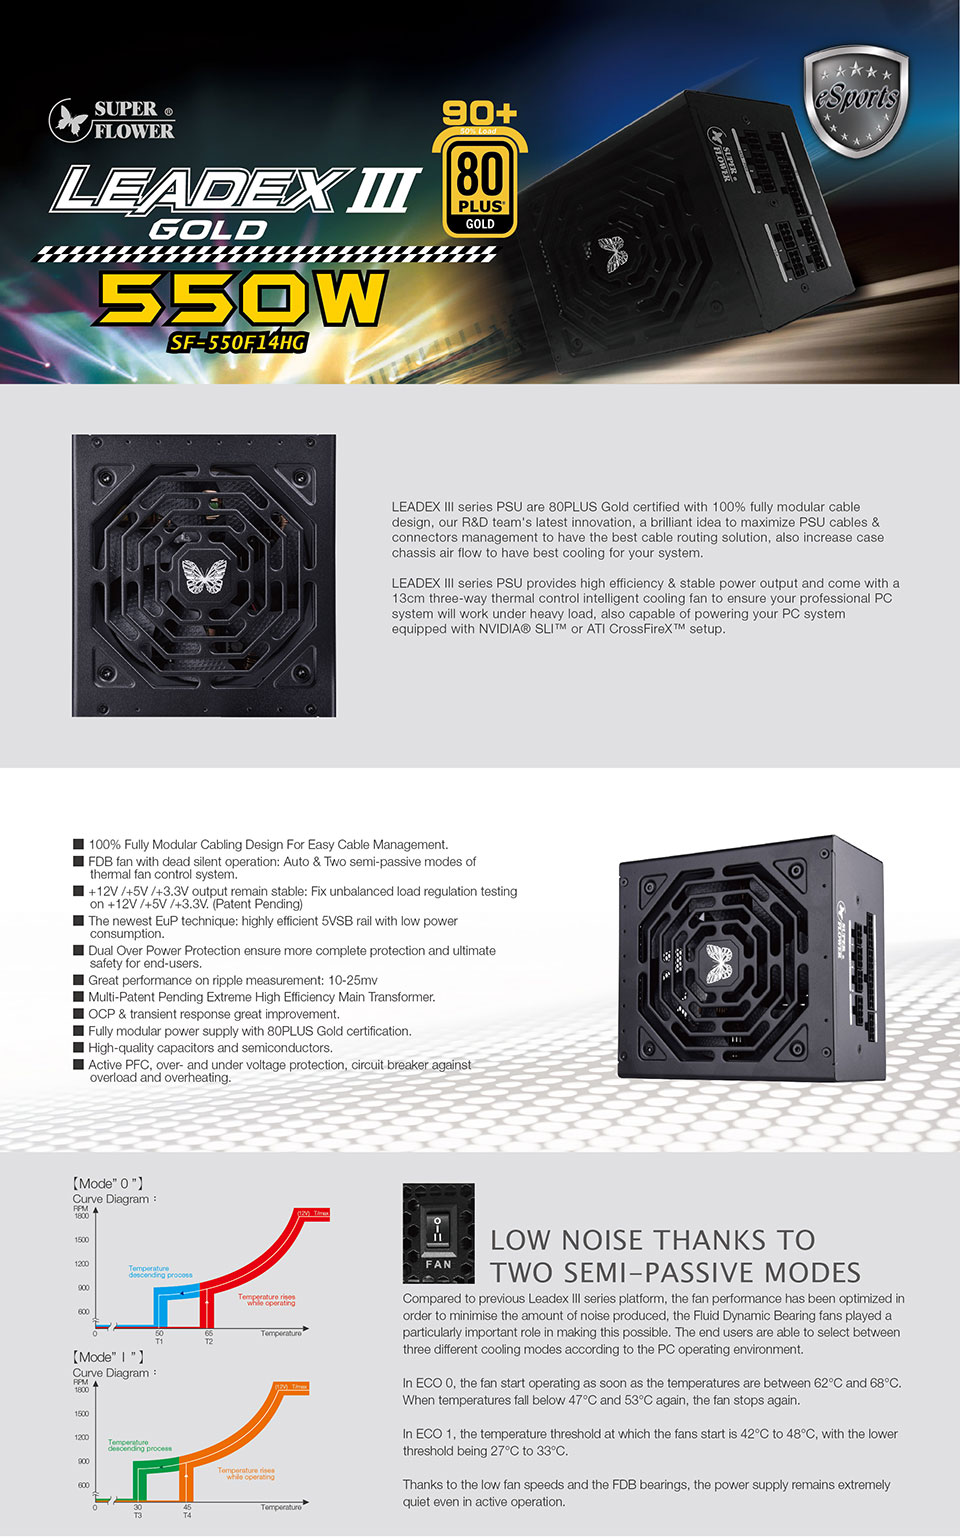 Super Flower Leadex III Gold 550W Power Supply features